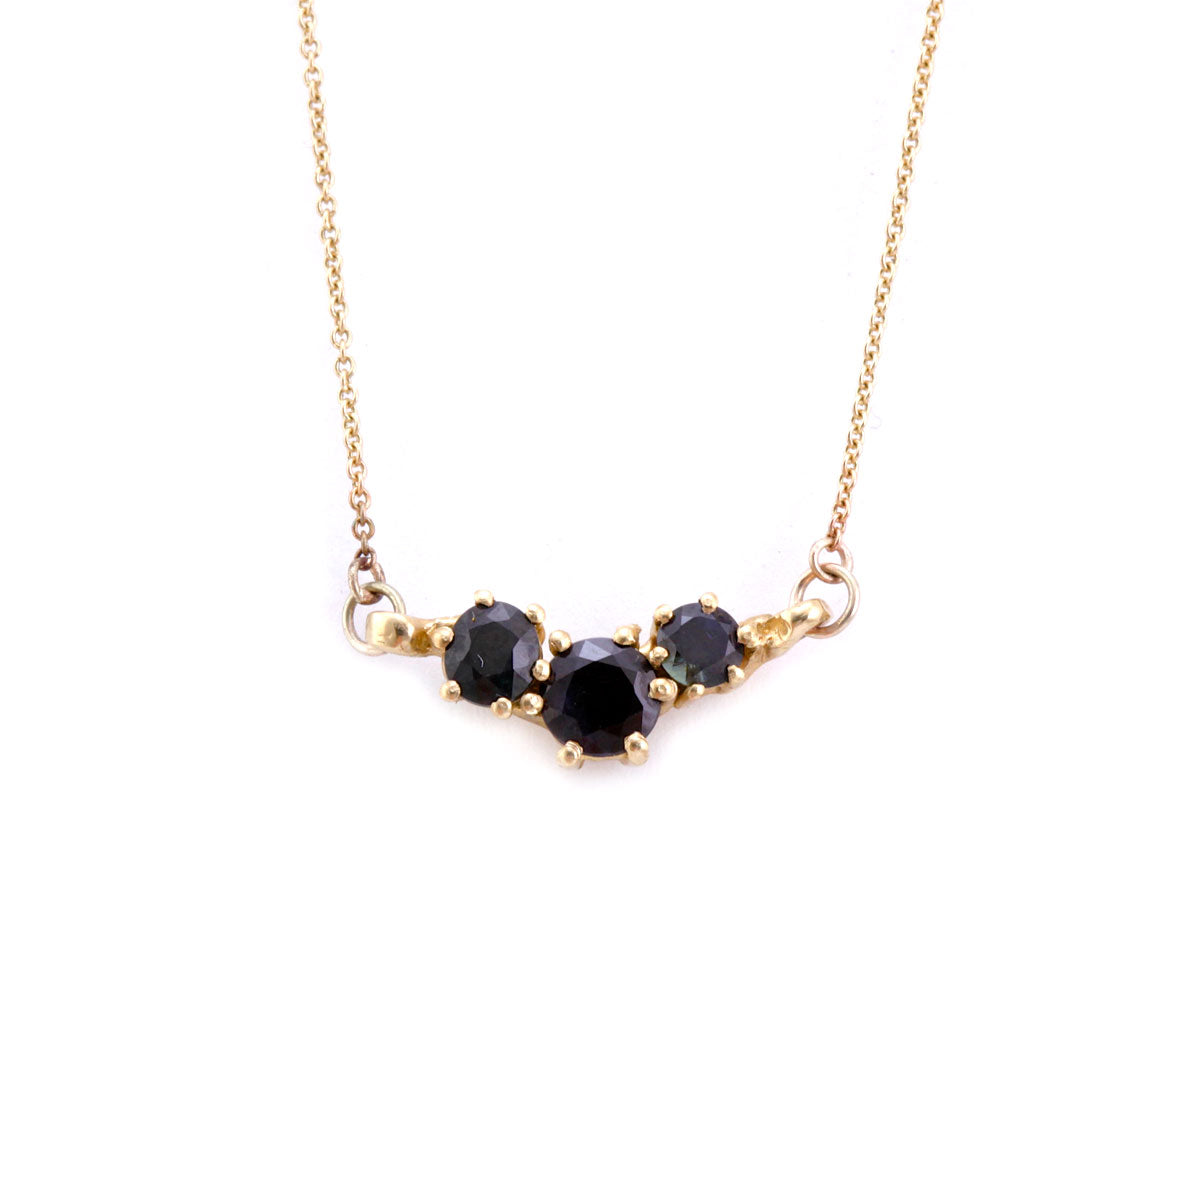 Sapphire necklace in 9ct yellow gold, gold chain bespoke handmade bespoke handmade